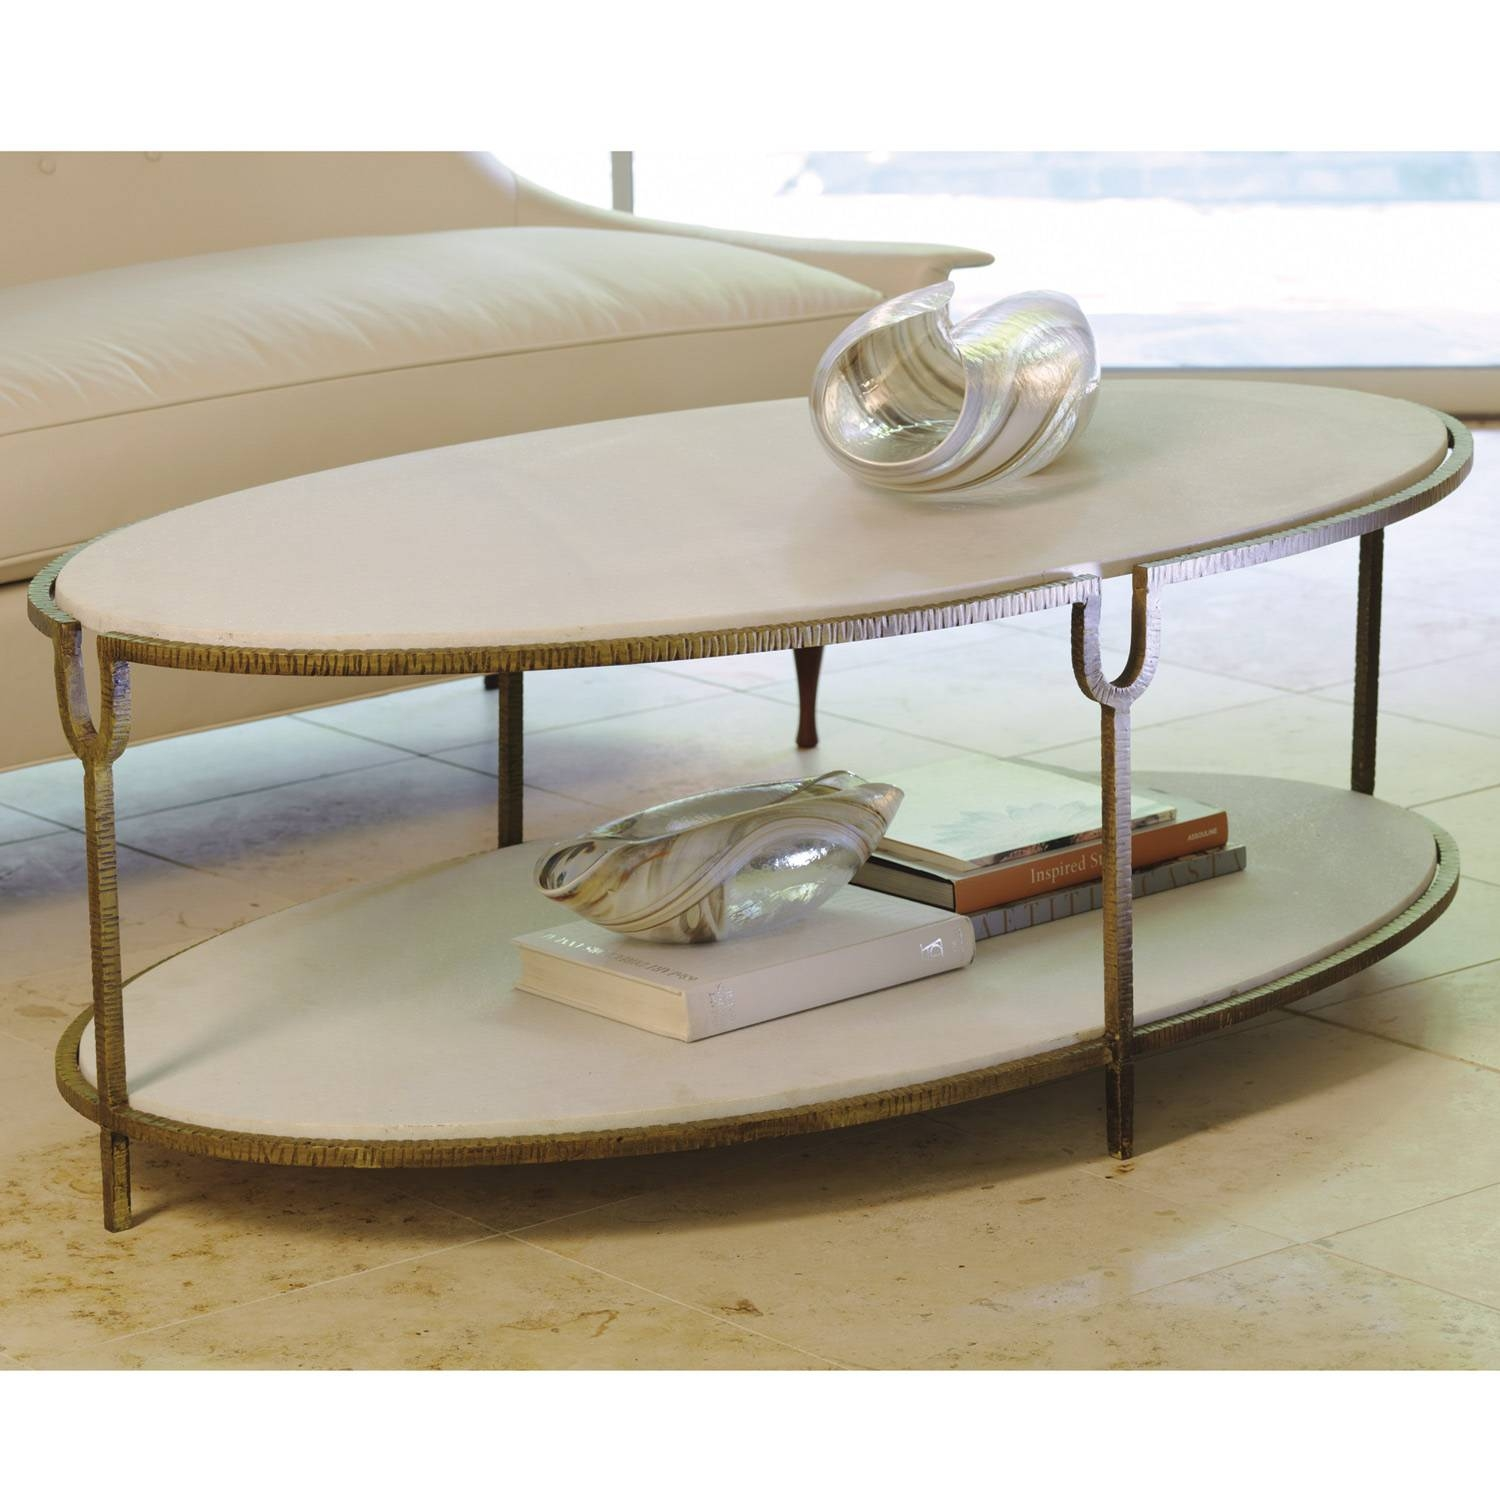 Unsual Glas Top Shapes With White Stones Base As Abstract Art with Coffee Tables With Oval Shape (Image 29 of 30)